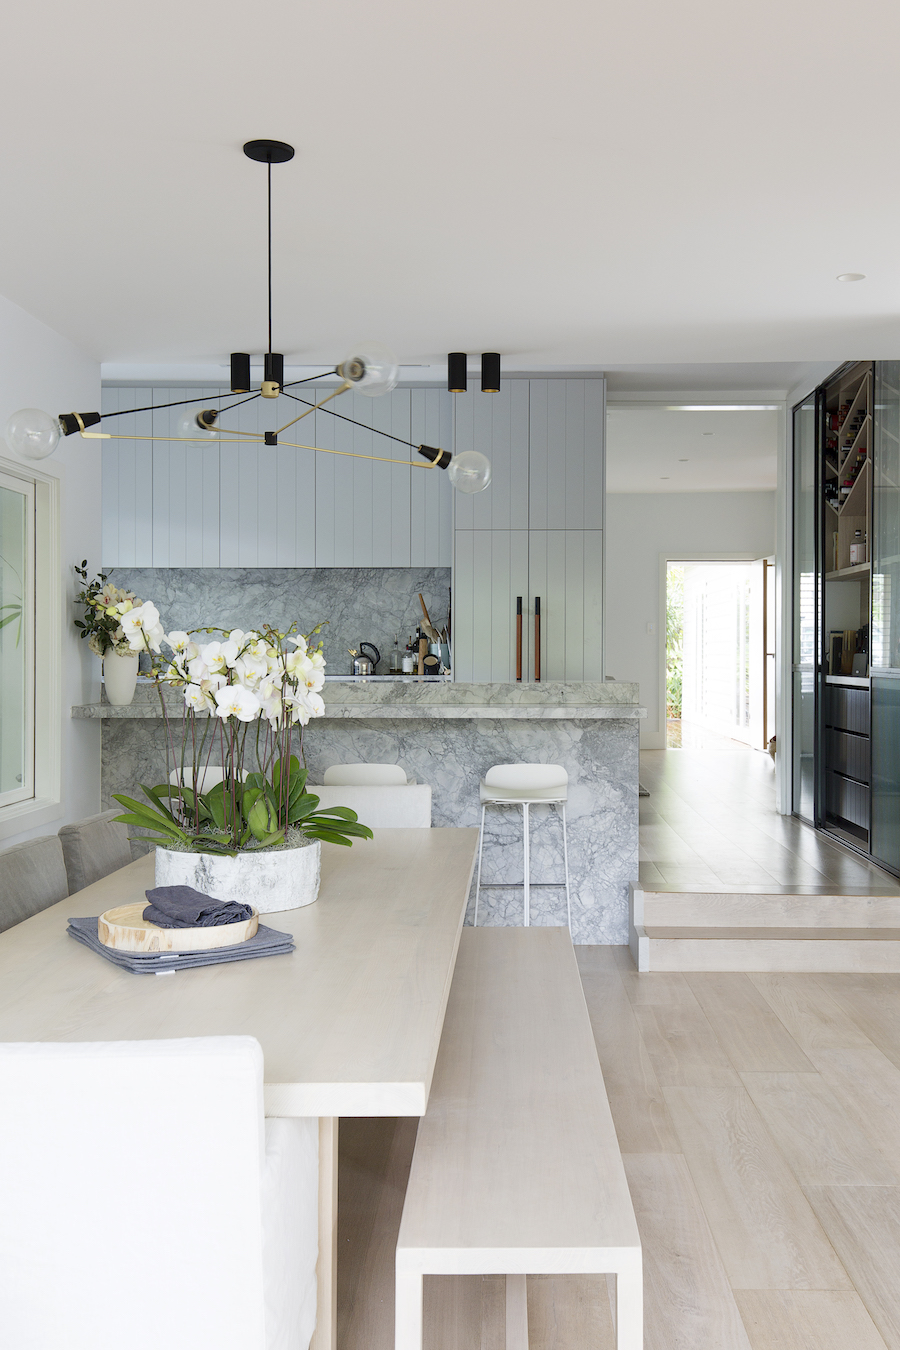 Modern kitchen planning